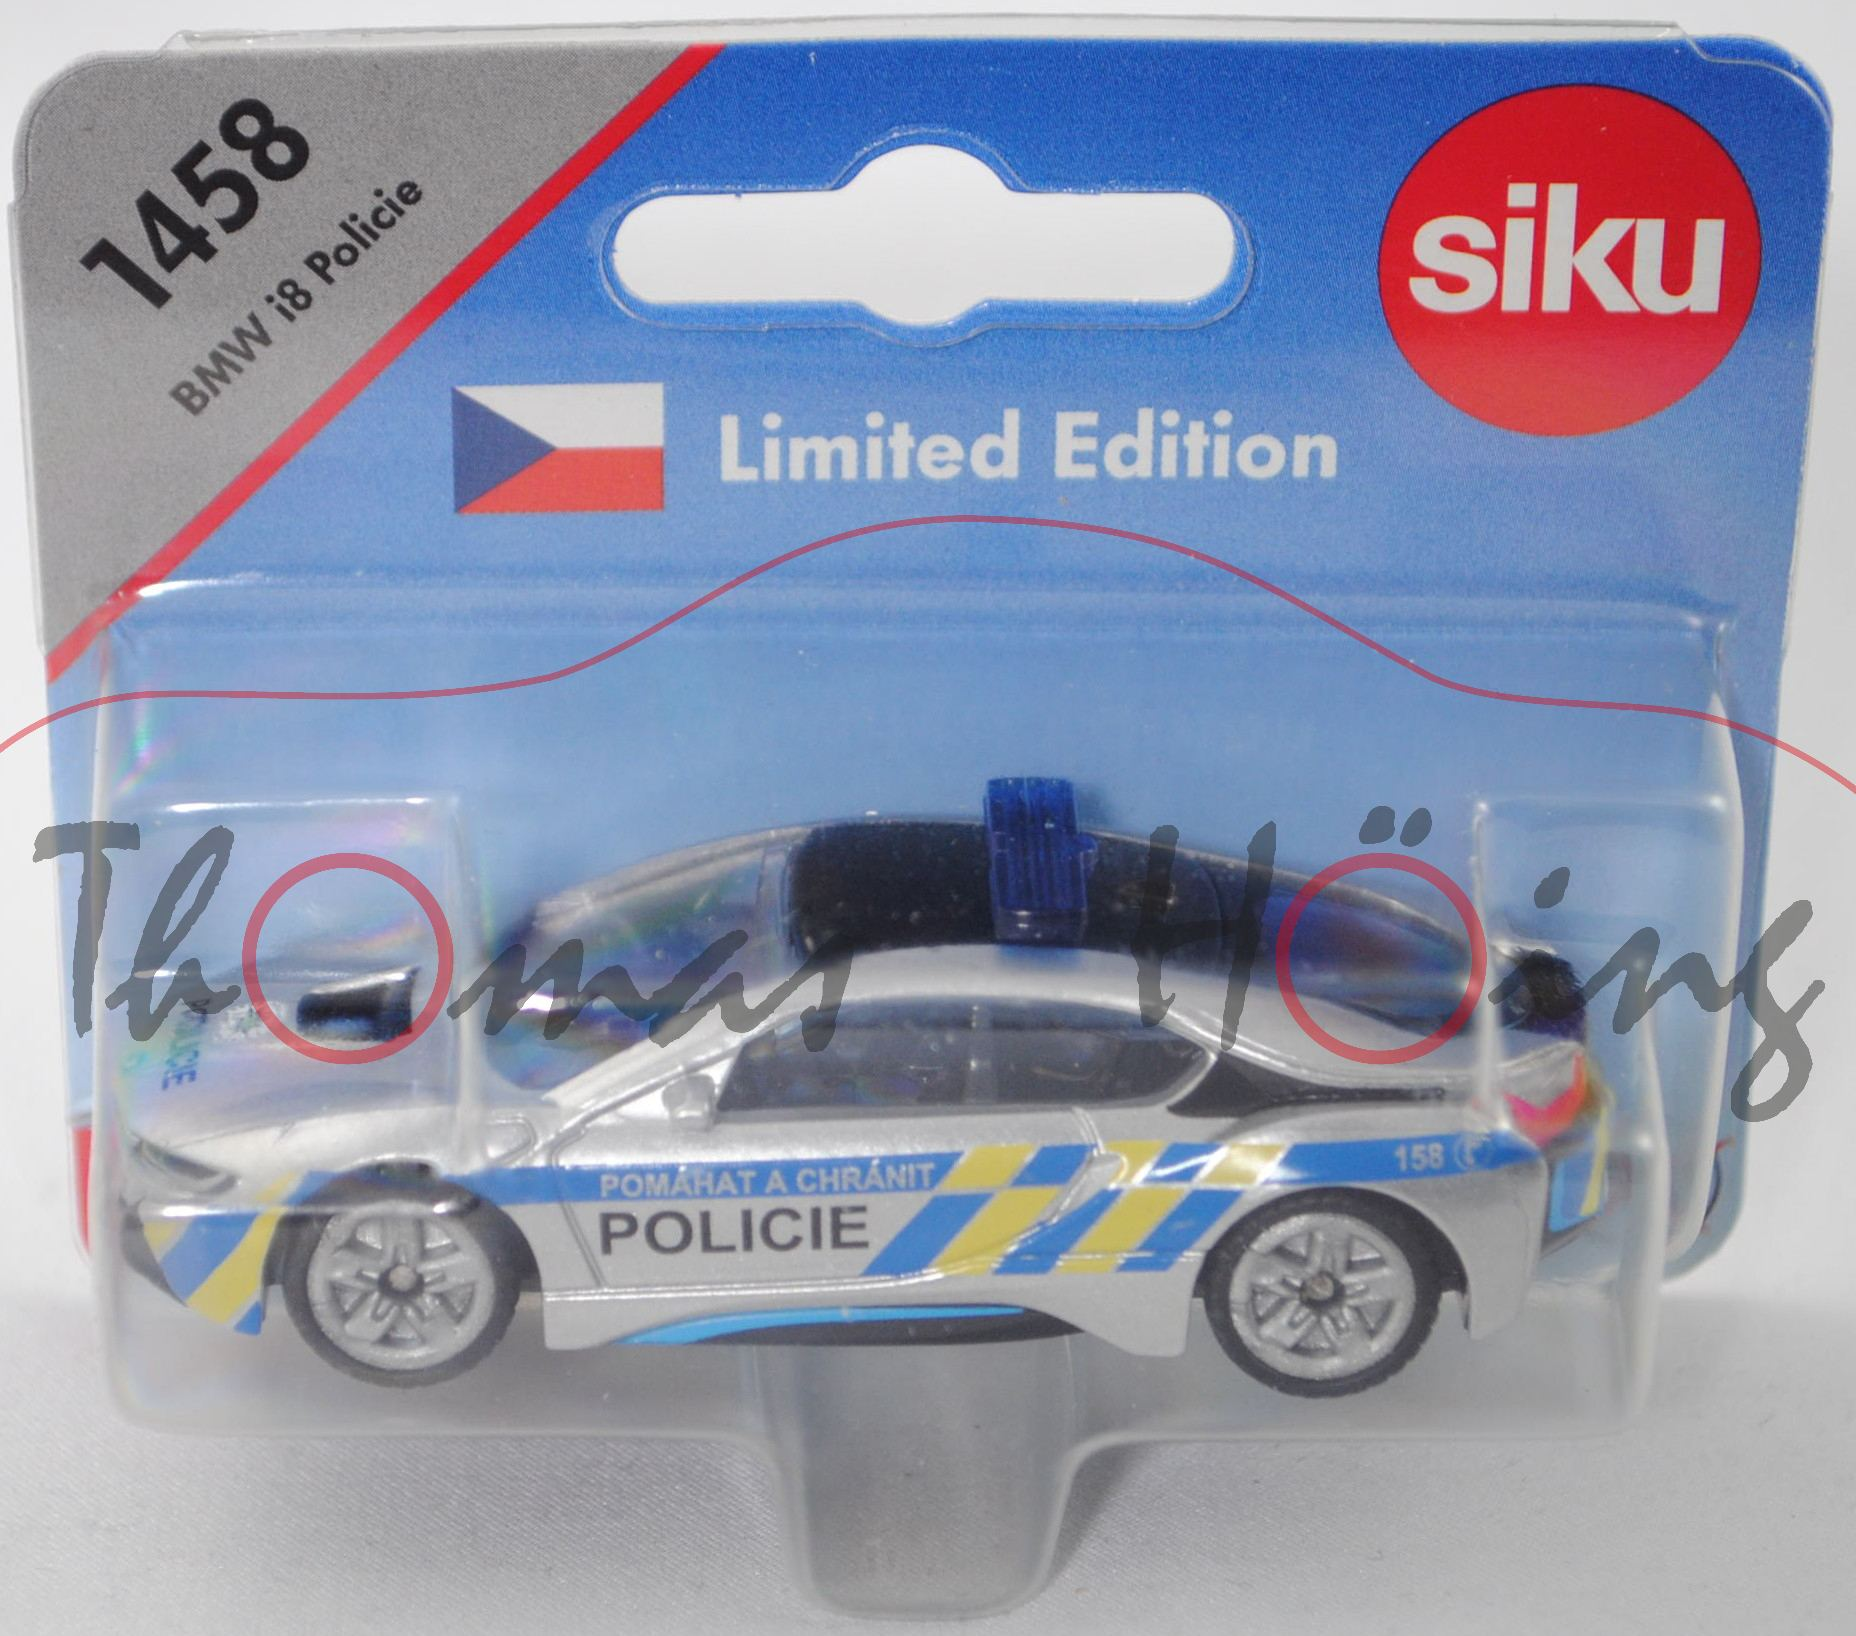 15 kw 2018 news automodelle h ing. Black Bedroom Furniture Sets. Home Design Ideas